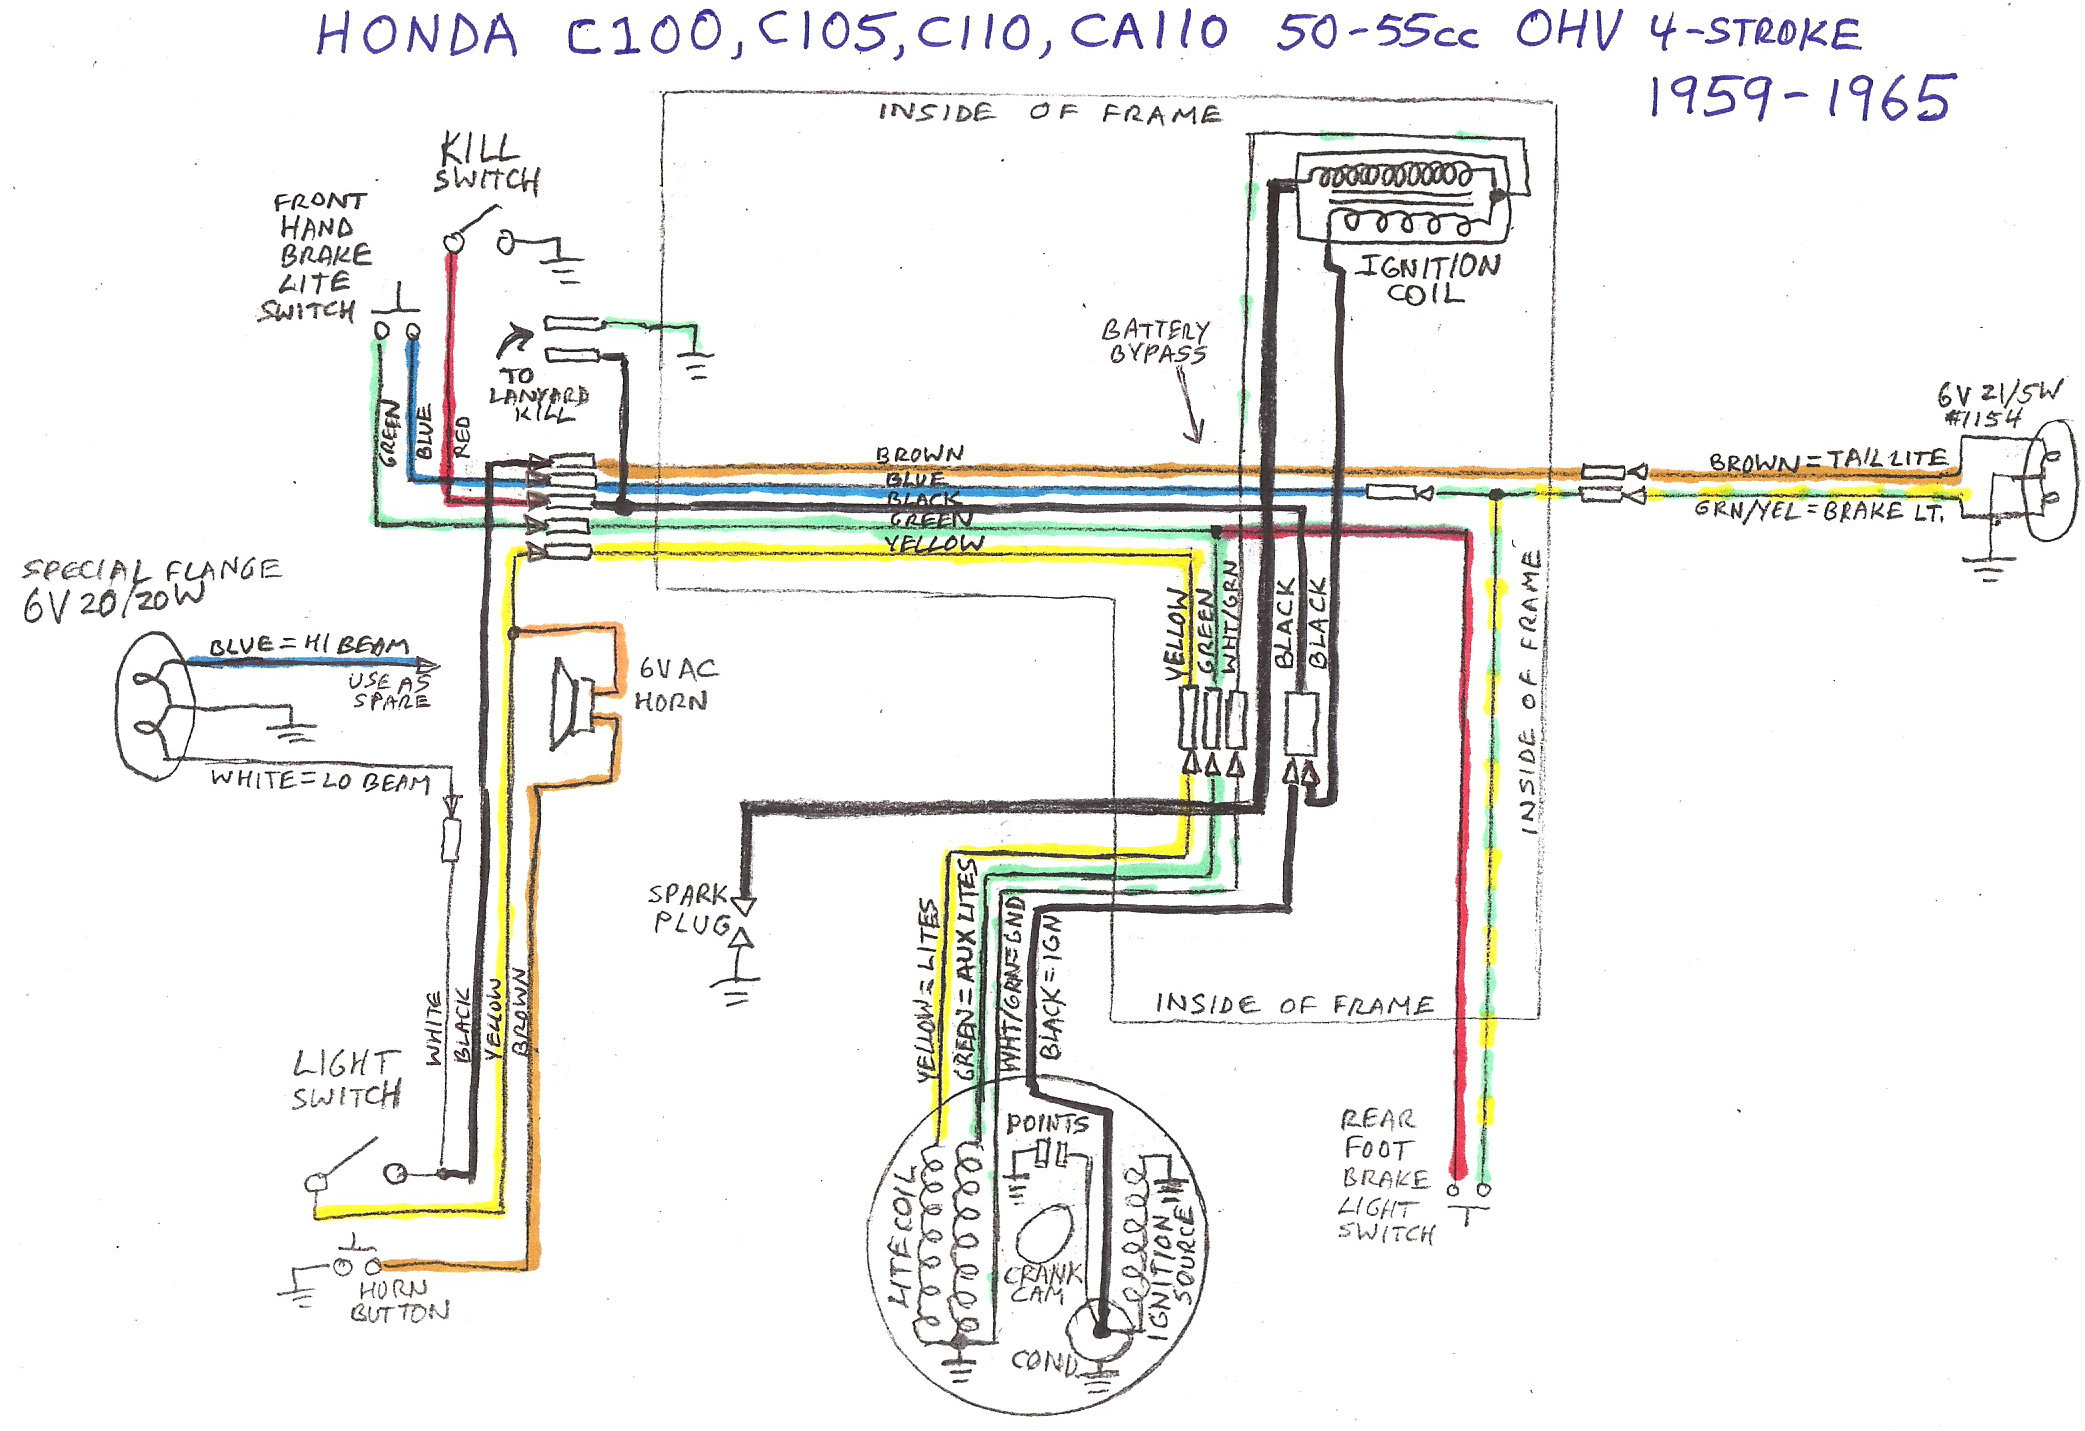 derbi senda 50 wiring diagram ge xl44 gas range parts somurich